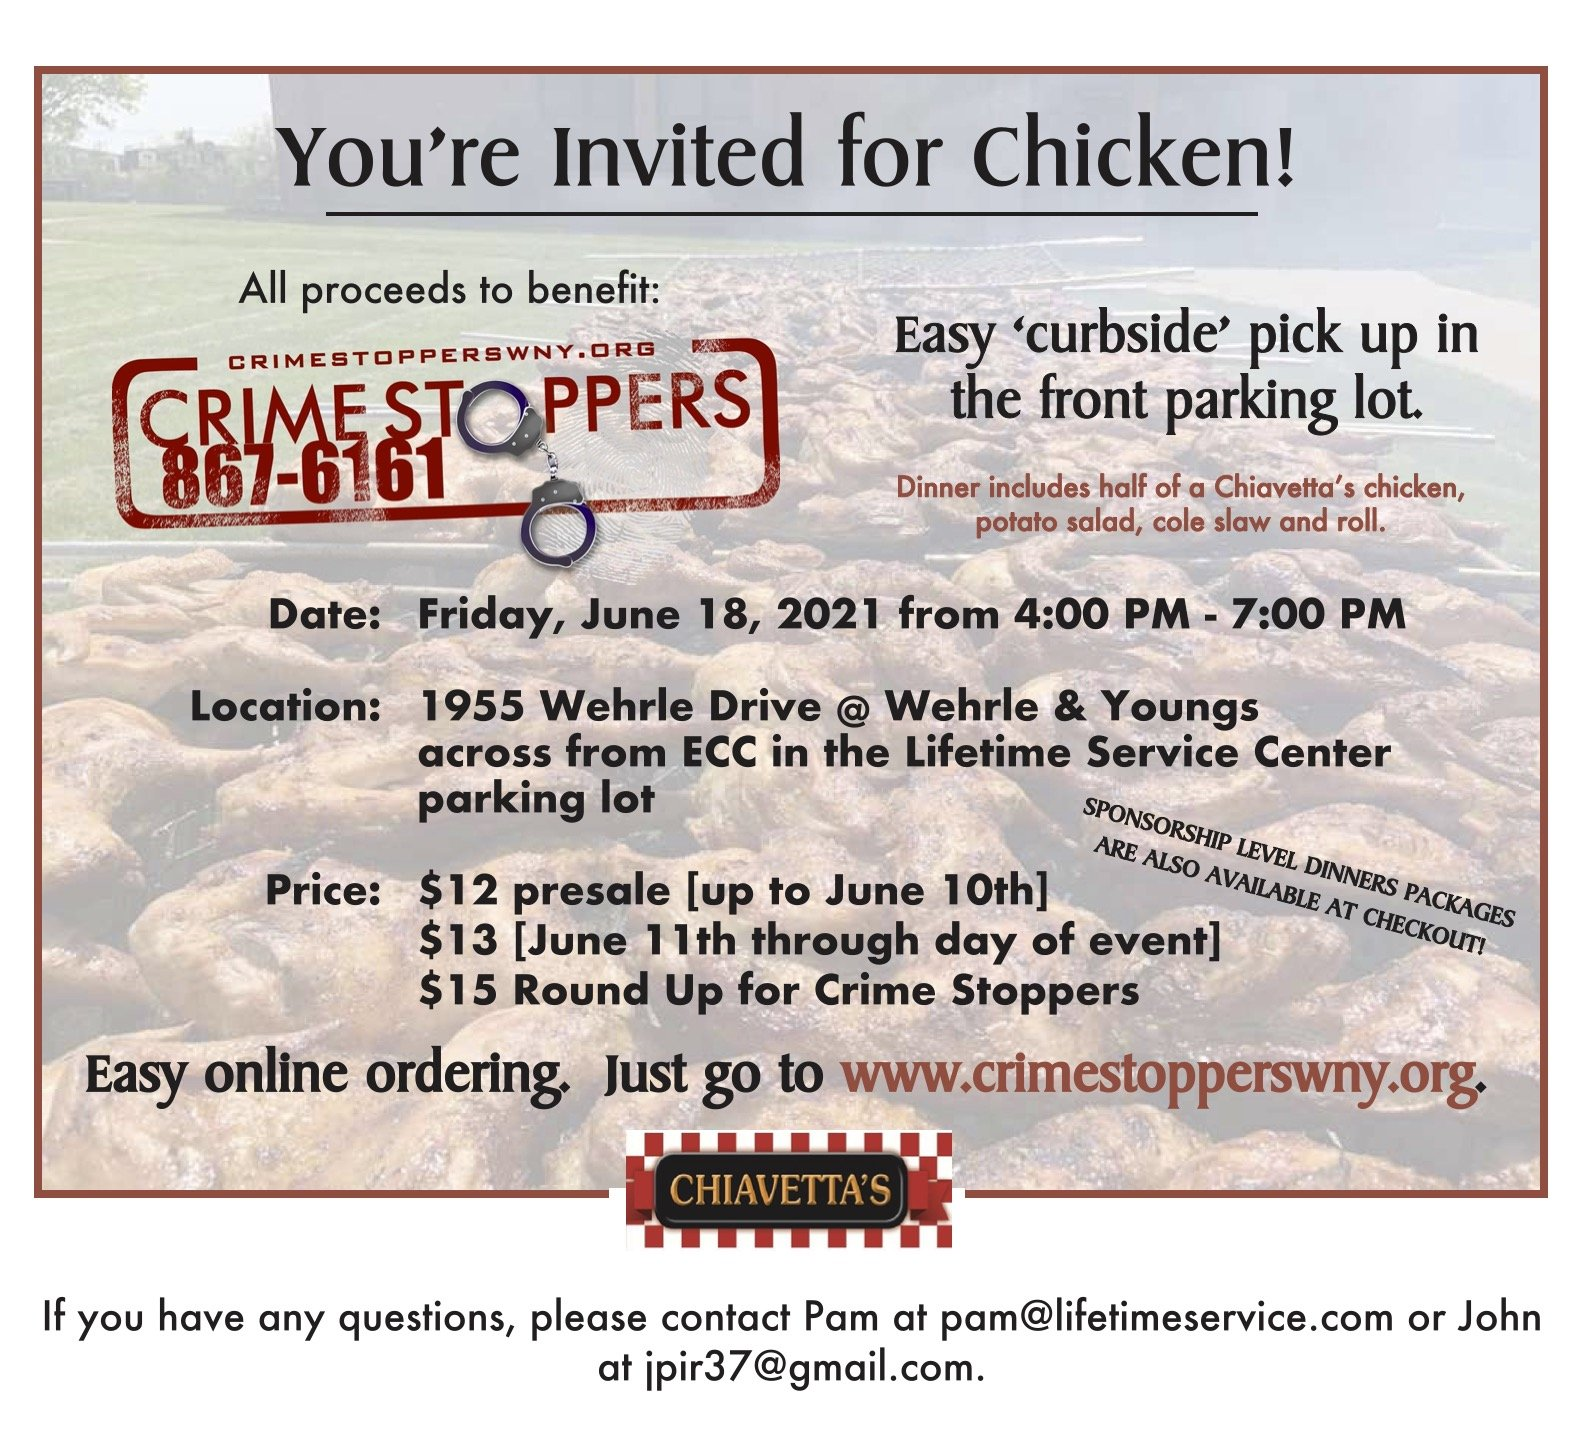 Crime Stoppers WNY Chiavetta's Chicken Dinner Fundraiser 2021 Flier